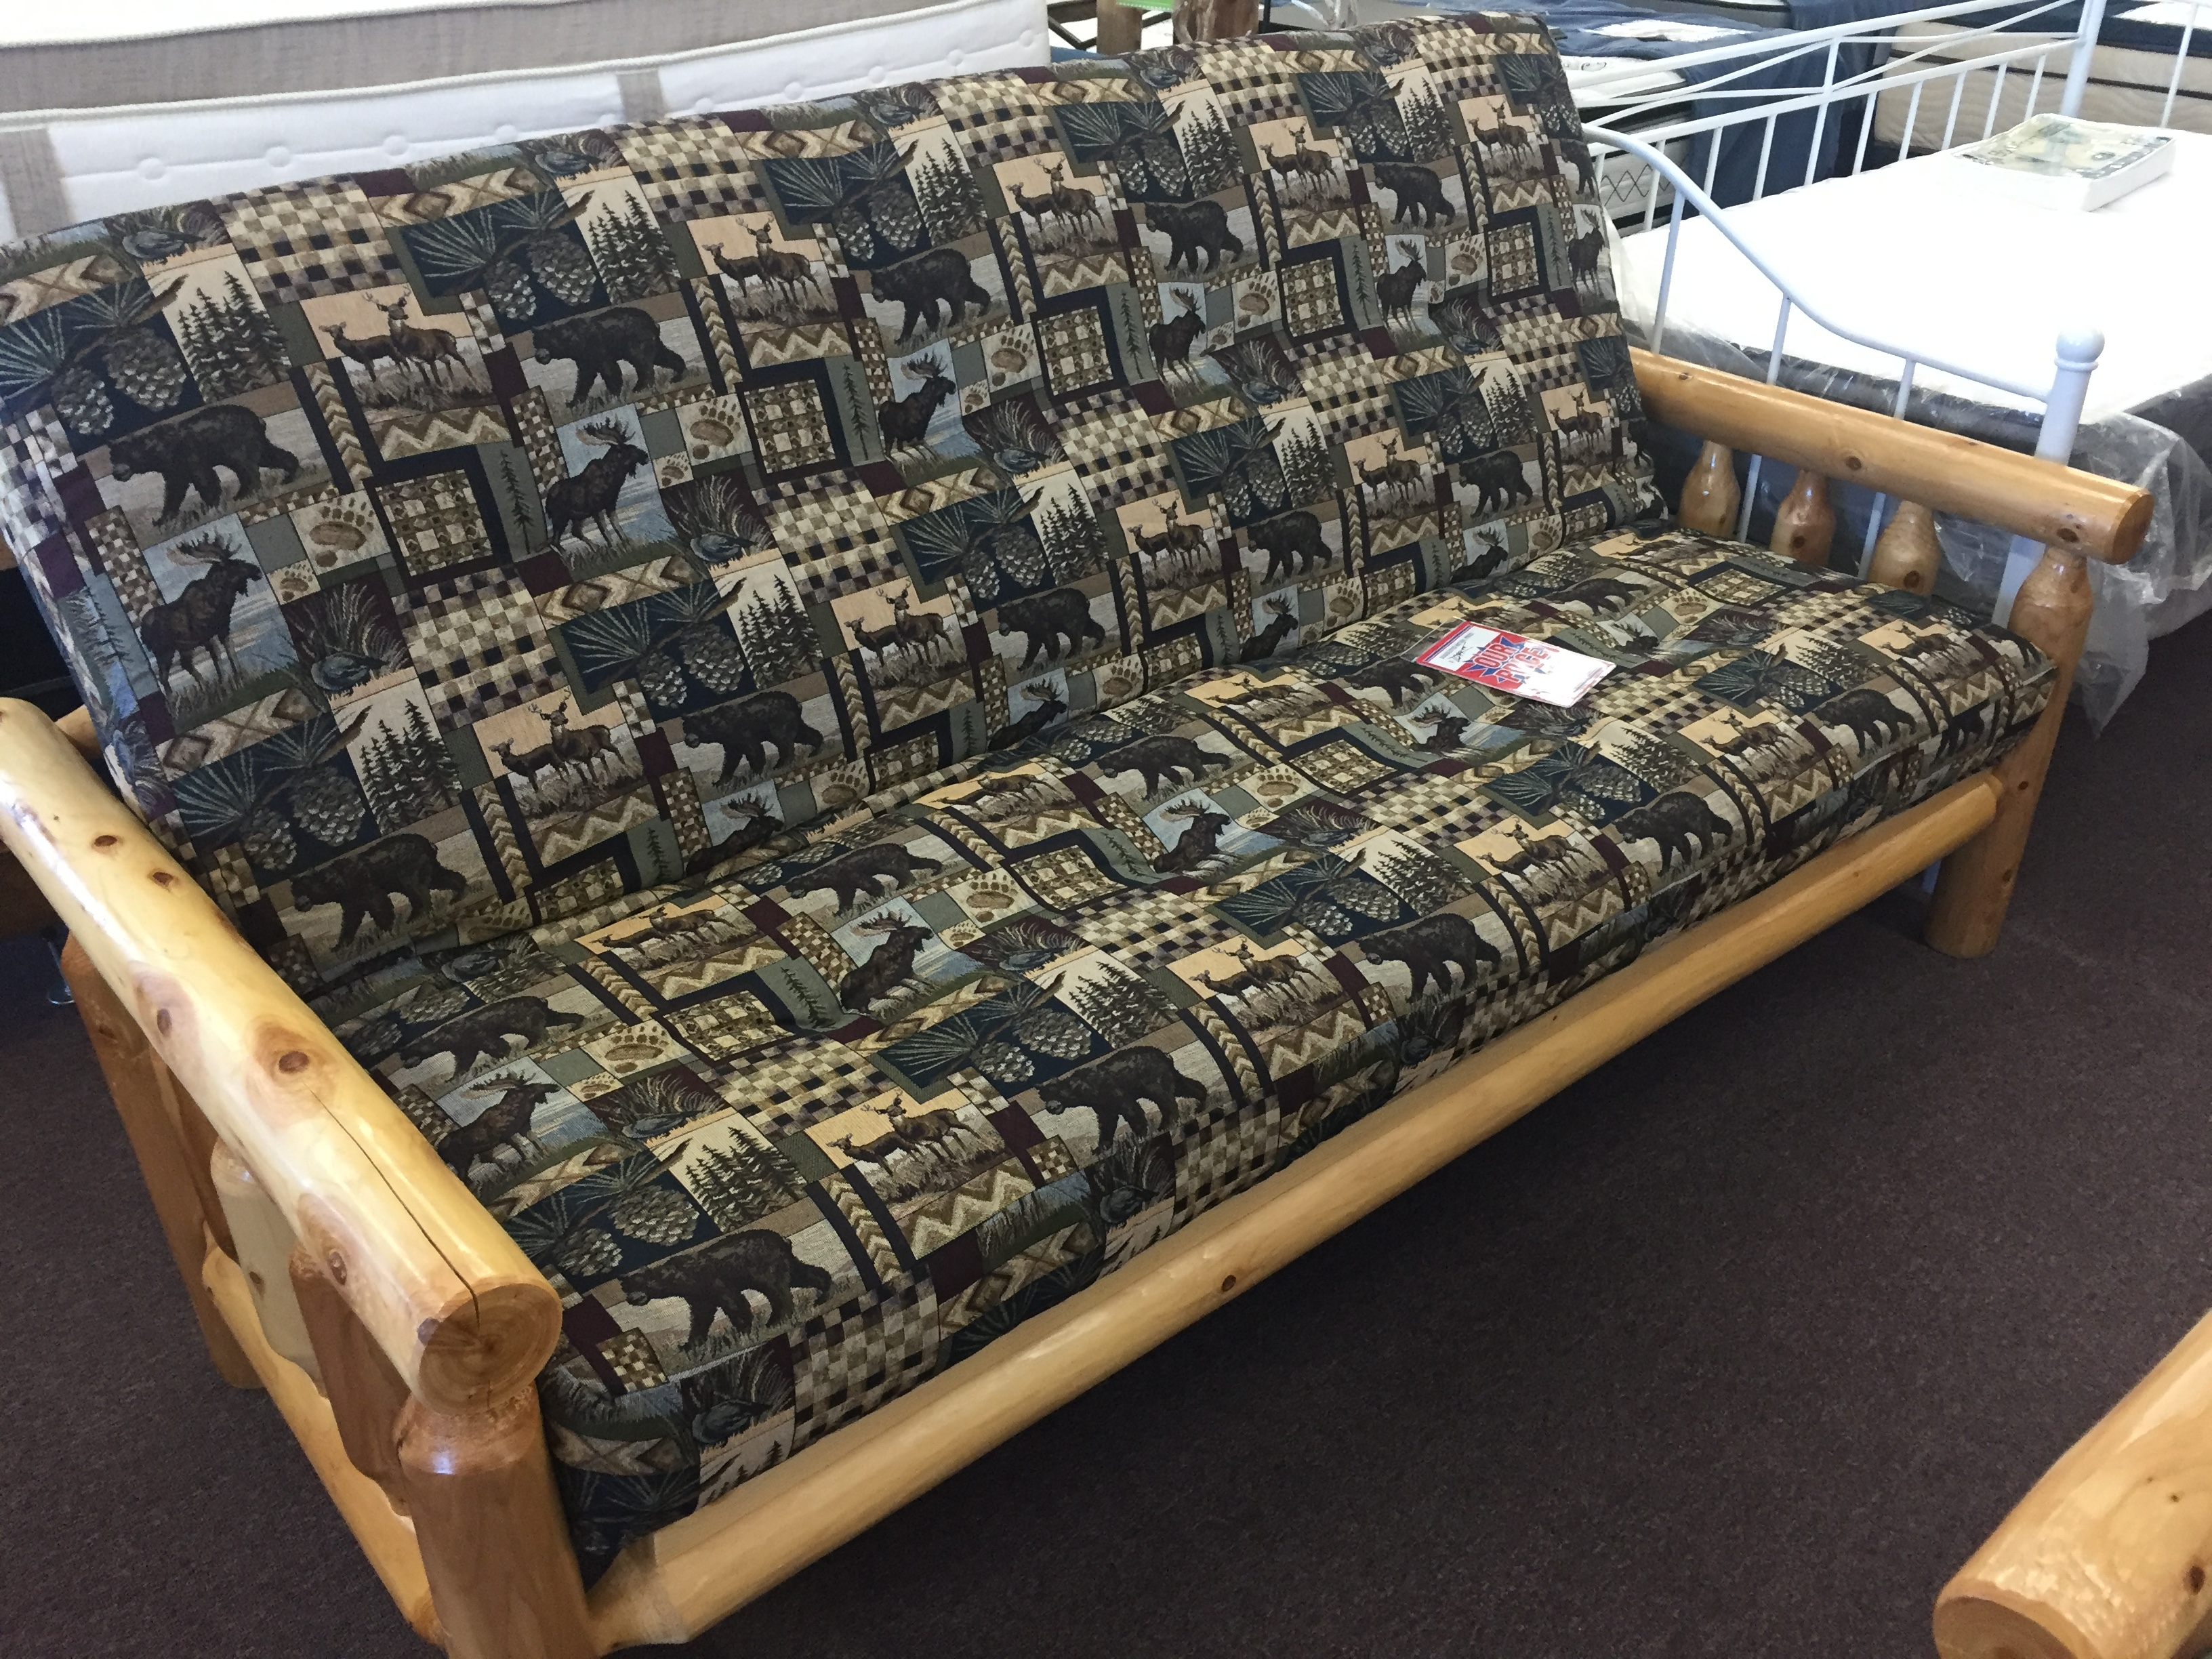 Fabulous Furniture Finds And More » Blog Archive » Cedar Log Futon ...